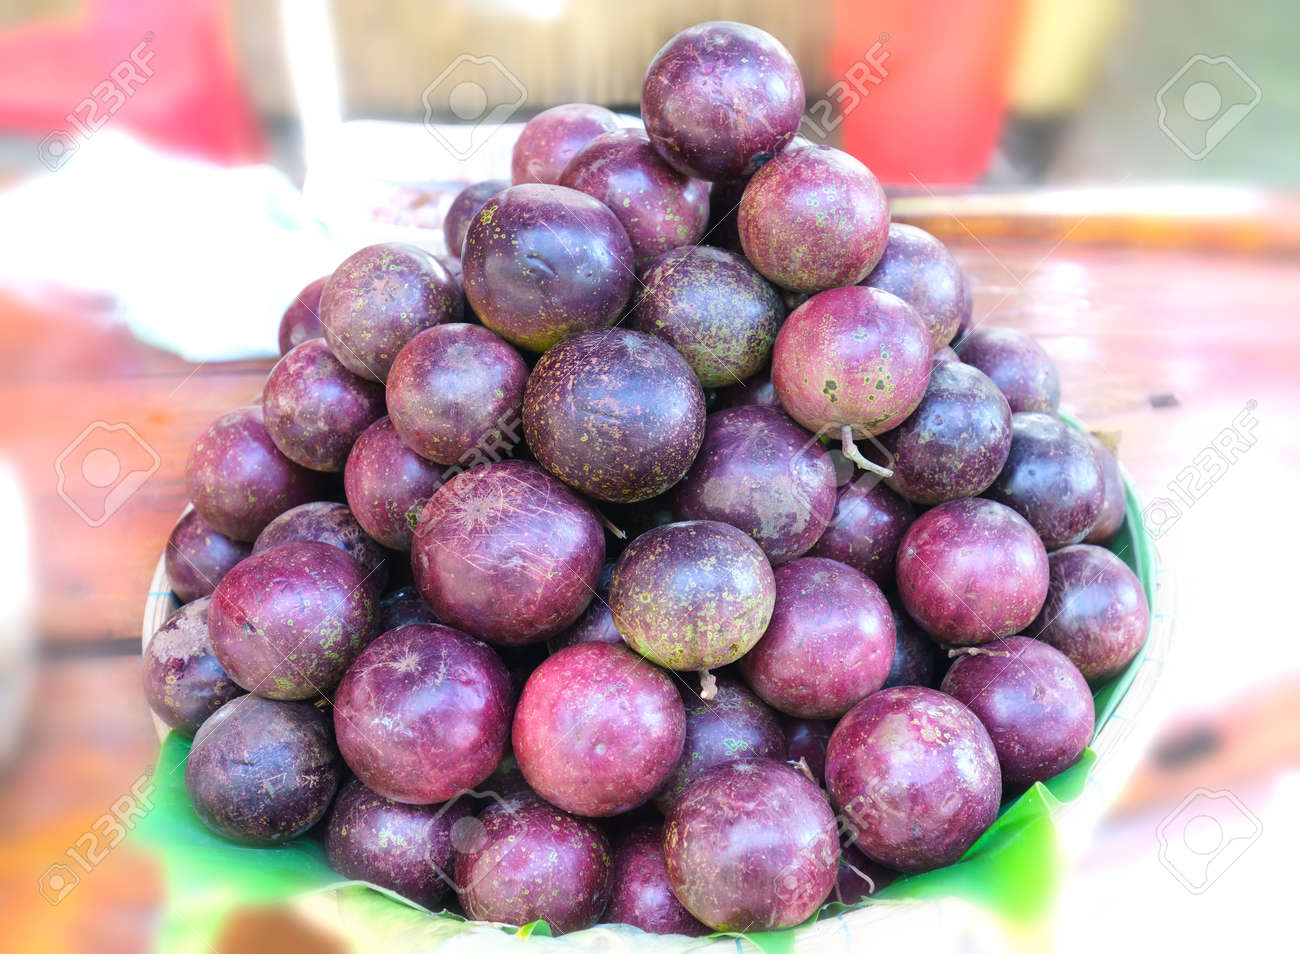 Star Apple Fruit For Sale